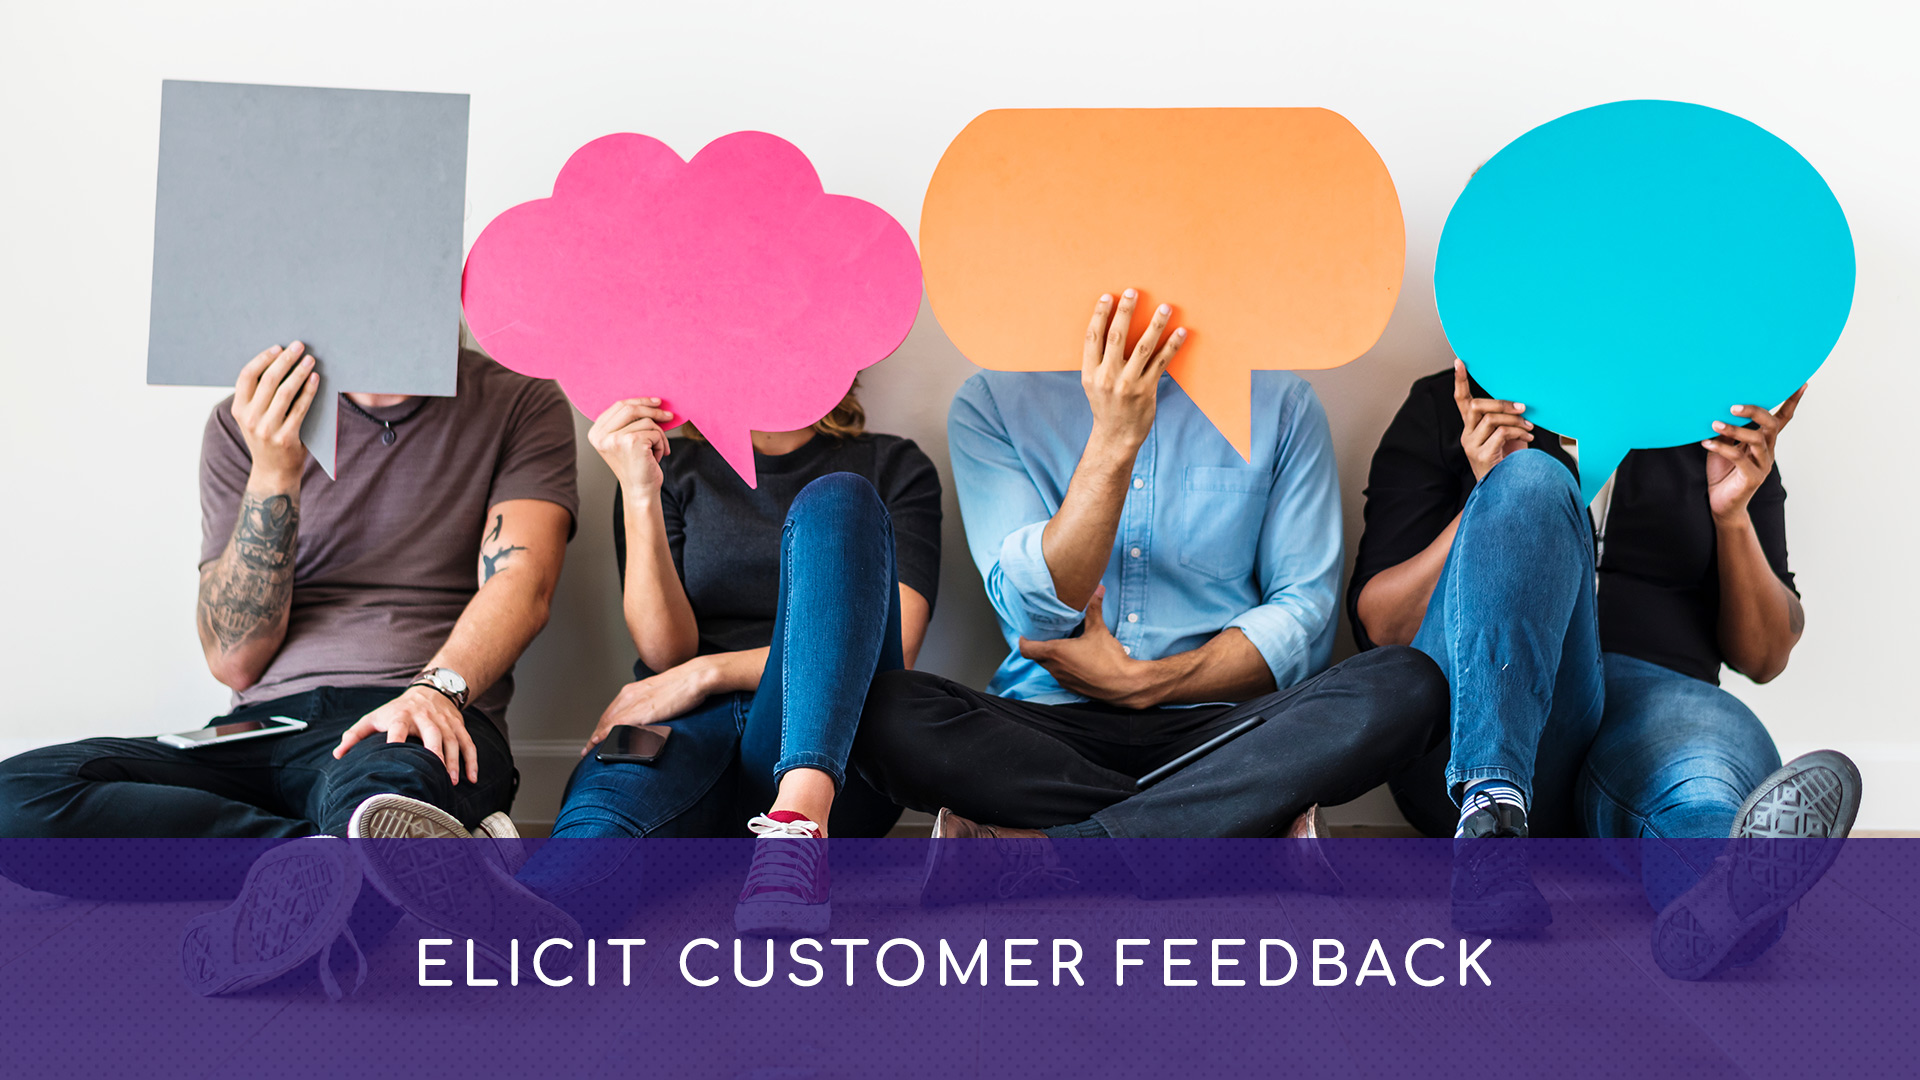 Elicit Customer Feedback